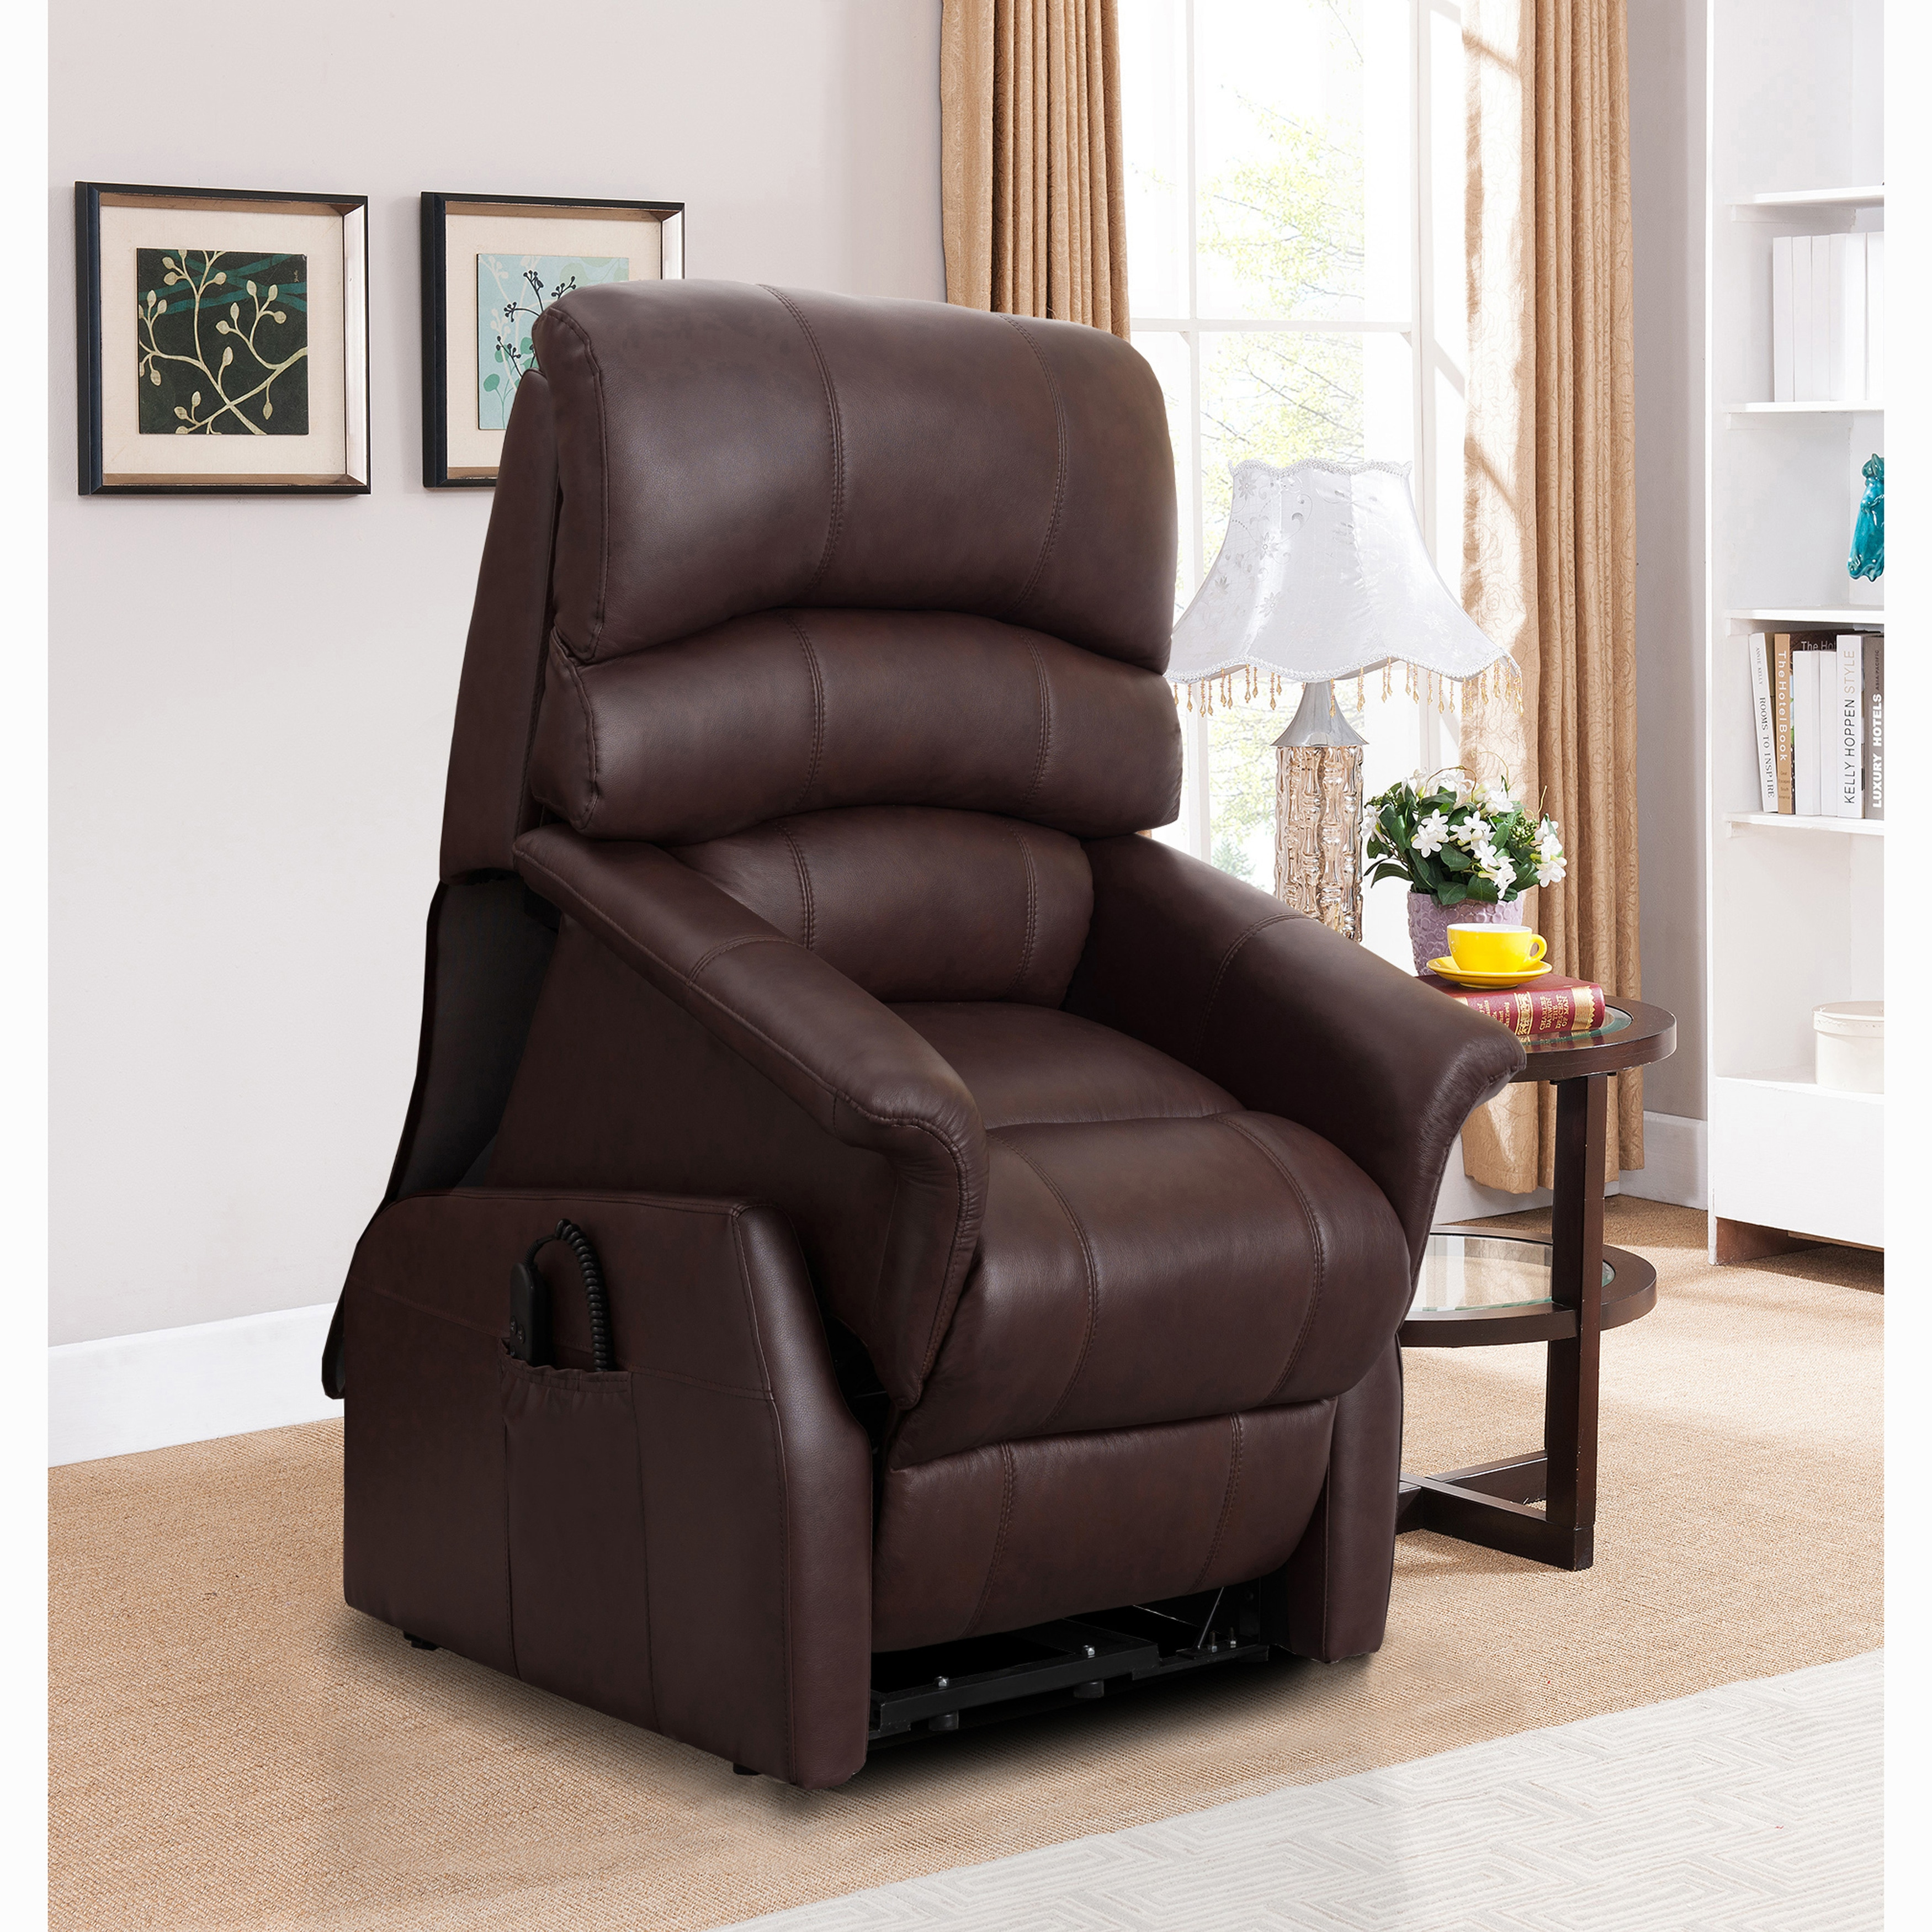 Phenomenal Erin Brown Top Grain Leather Power Lift And Lay Flat Recliner Chair Caraccident5 Cool Chair Designs And Ideas Caraccident5Info